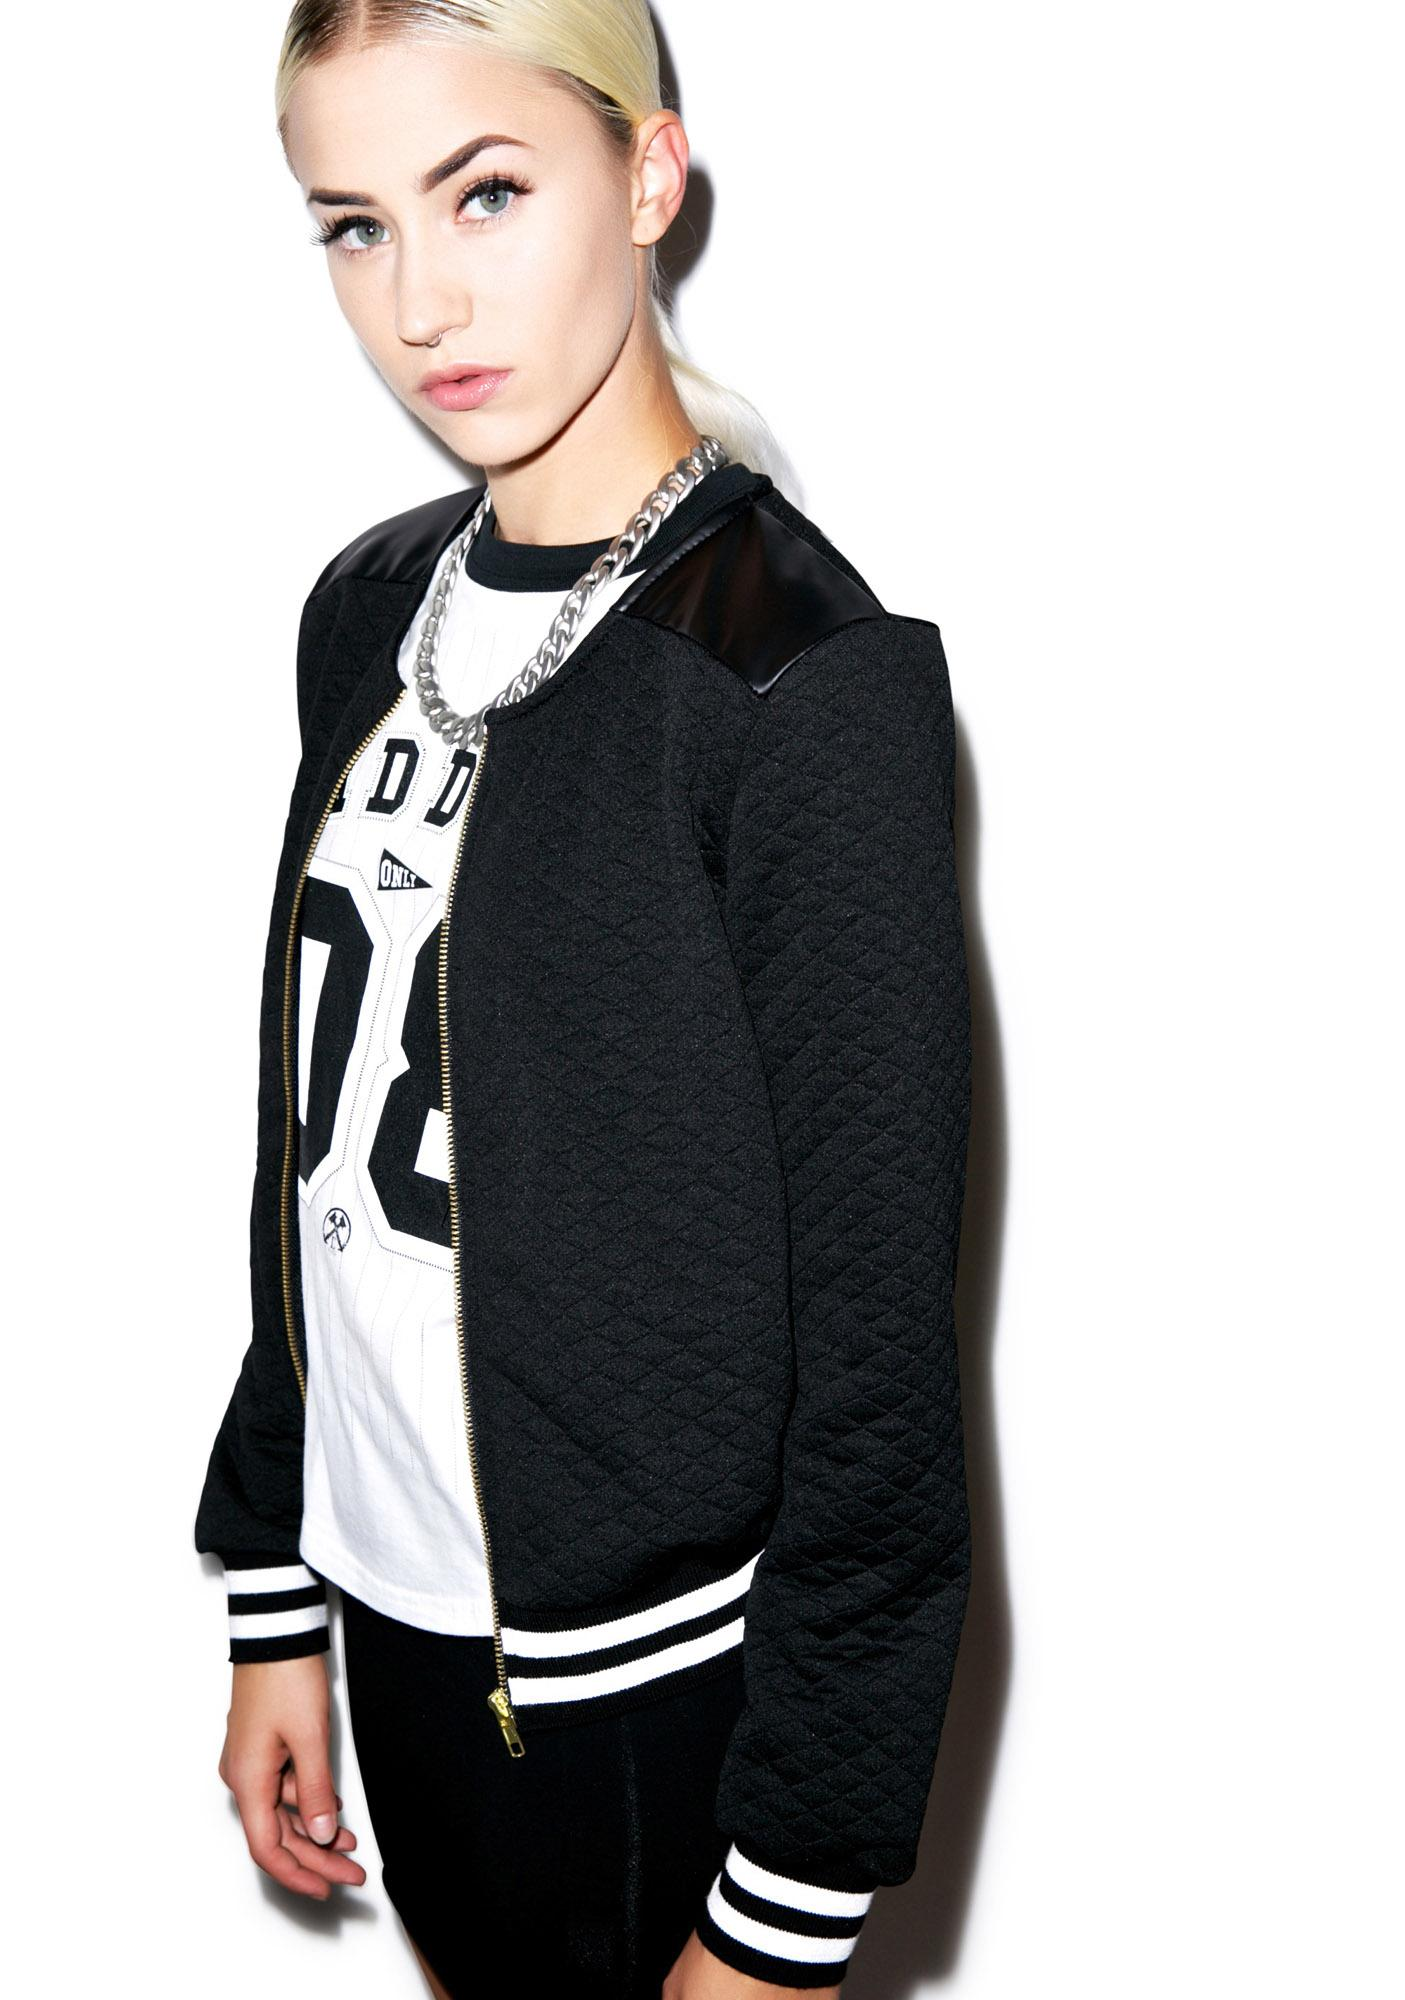 High School Drop Out Quilted Varsity Jacket Dolls Kill